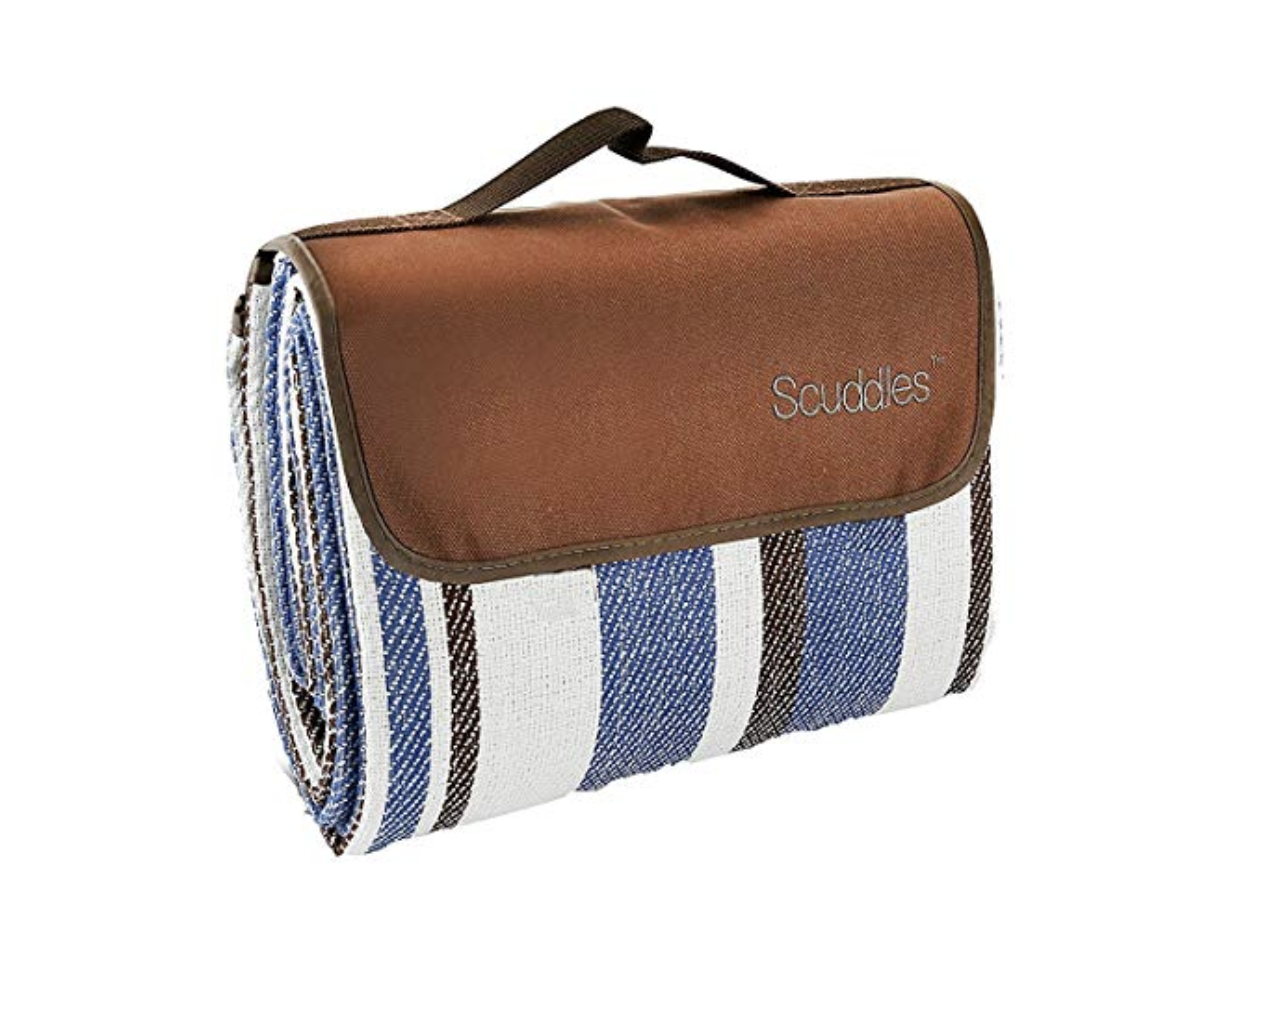 Scuddles Waterproof Picnic Blanket